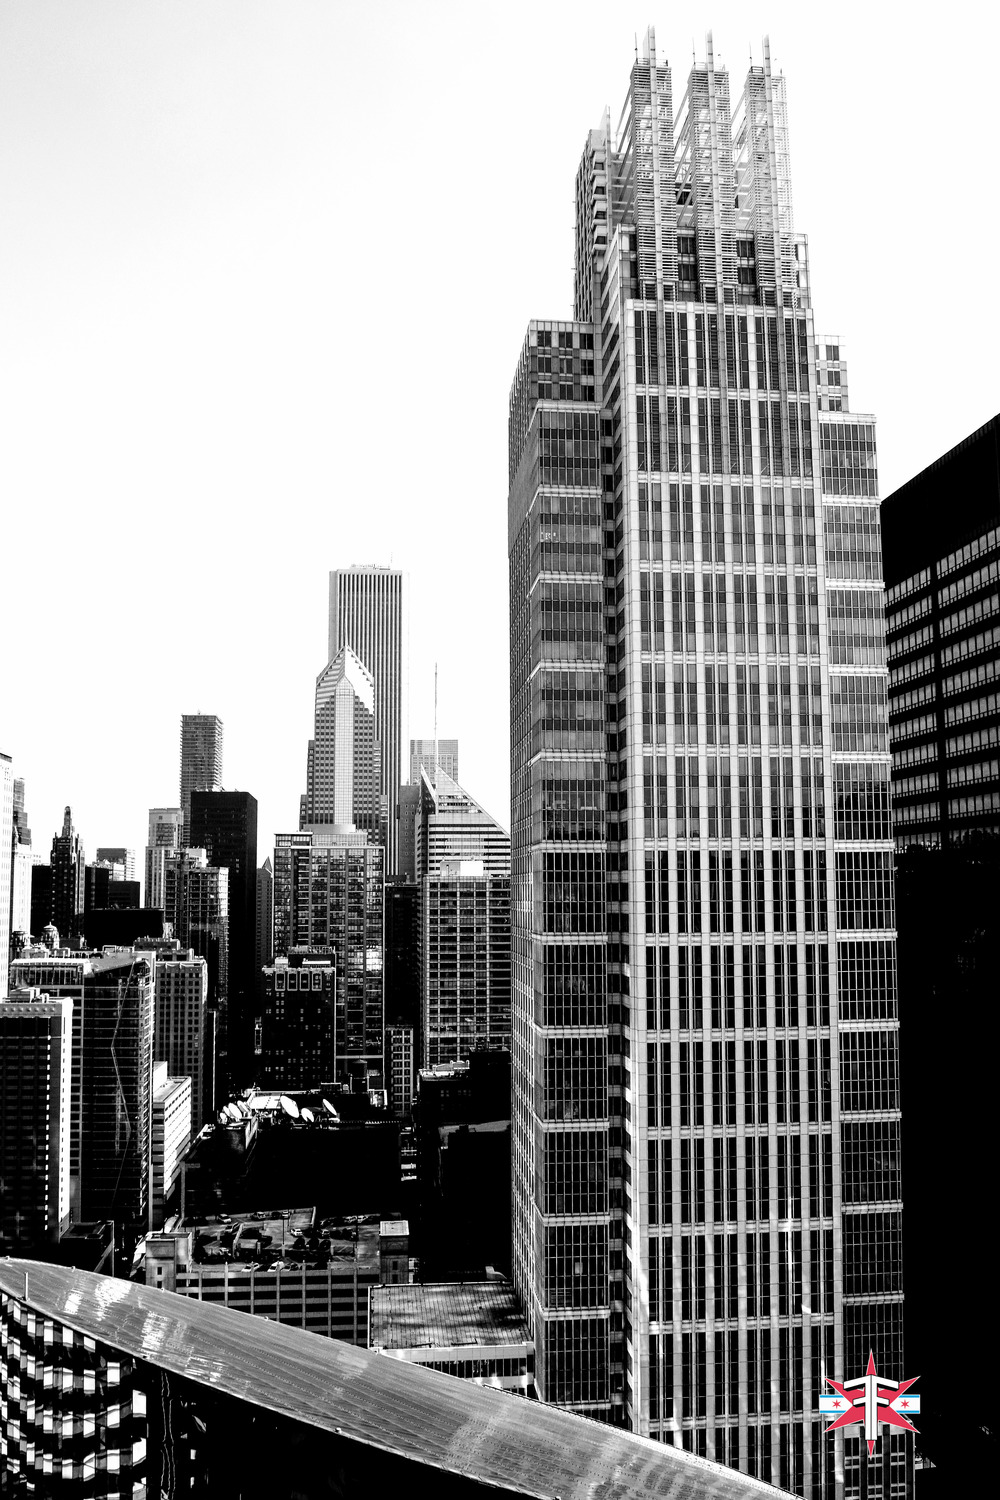 chicago art architecture eric formato photography design arquitectura architettura buildings skyscraper skyscrapers-4.jpg